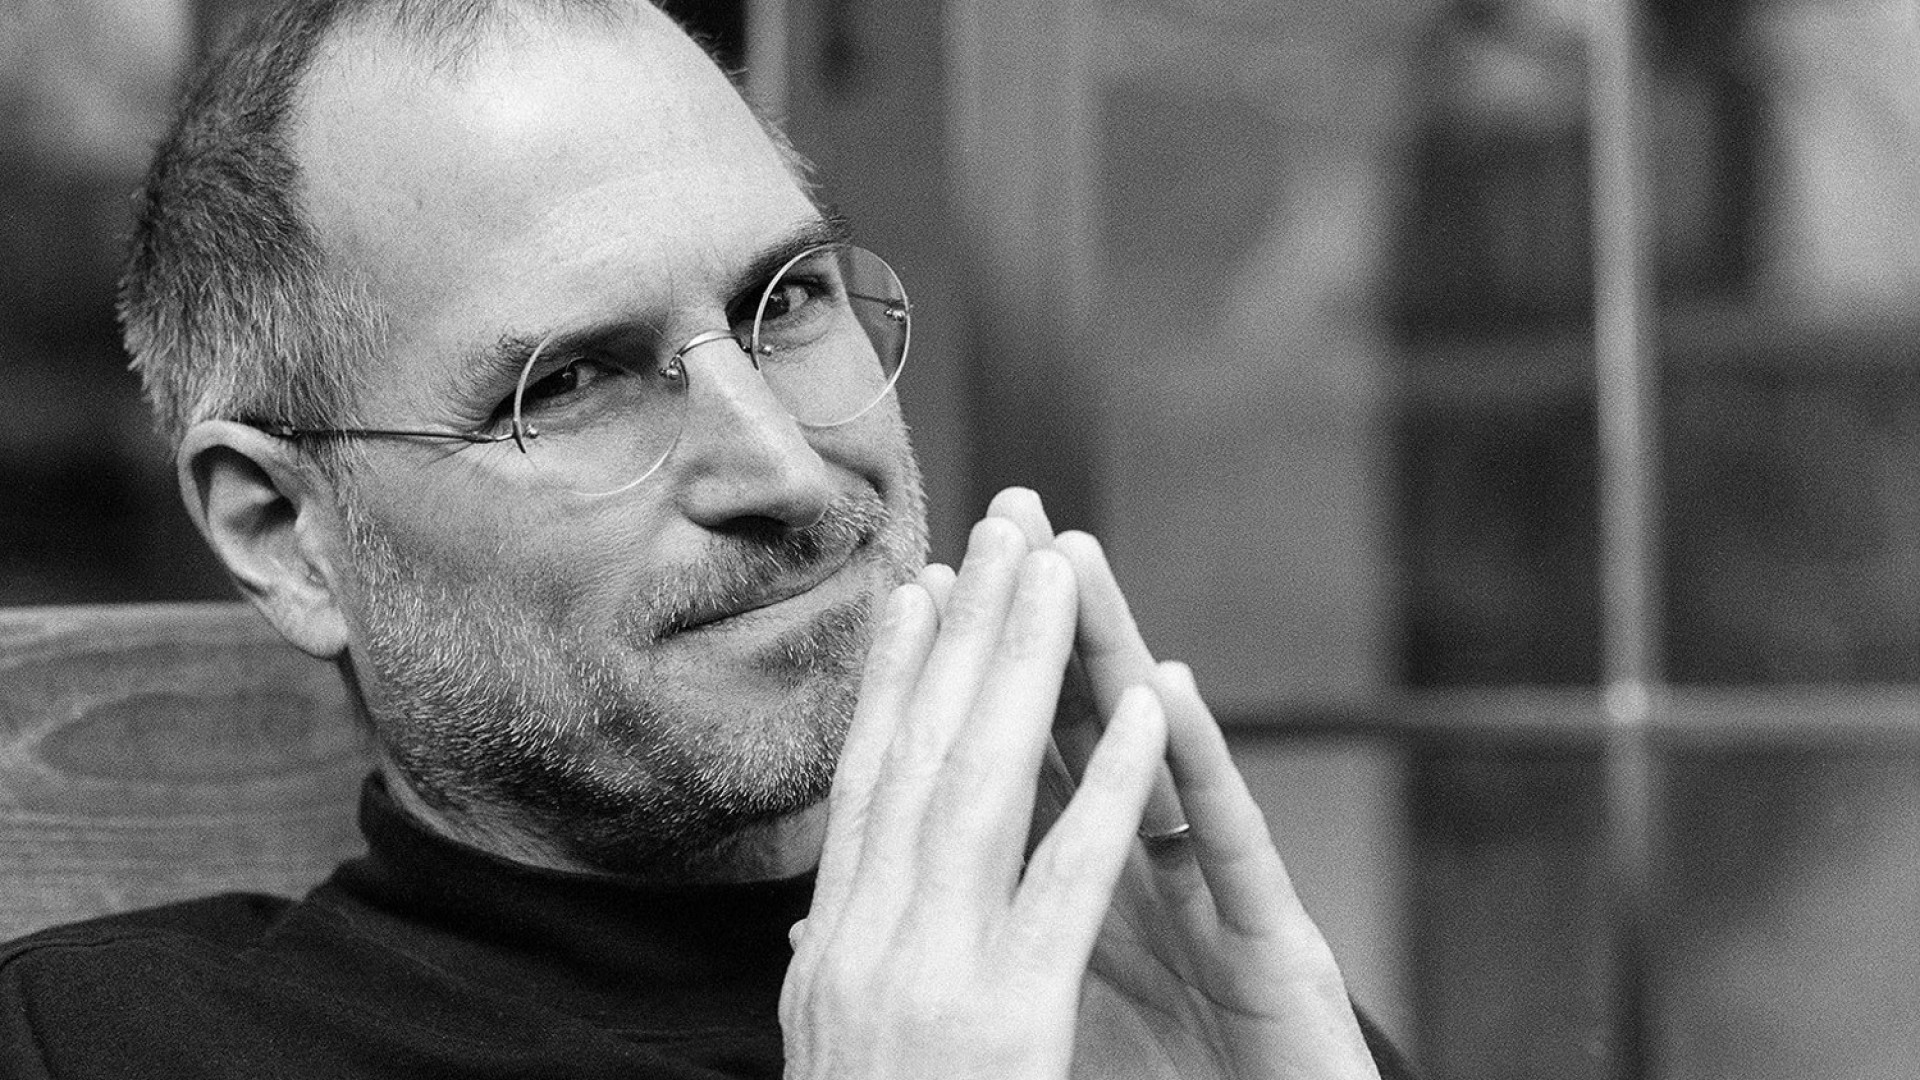 Tim Cook emails employees to reflect on third anniversary of Steve Jobs' death